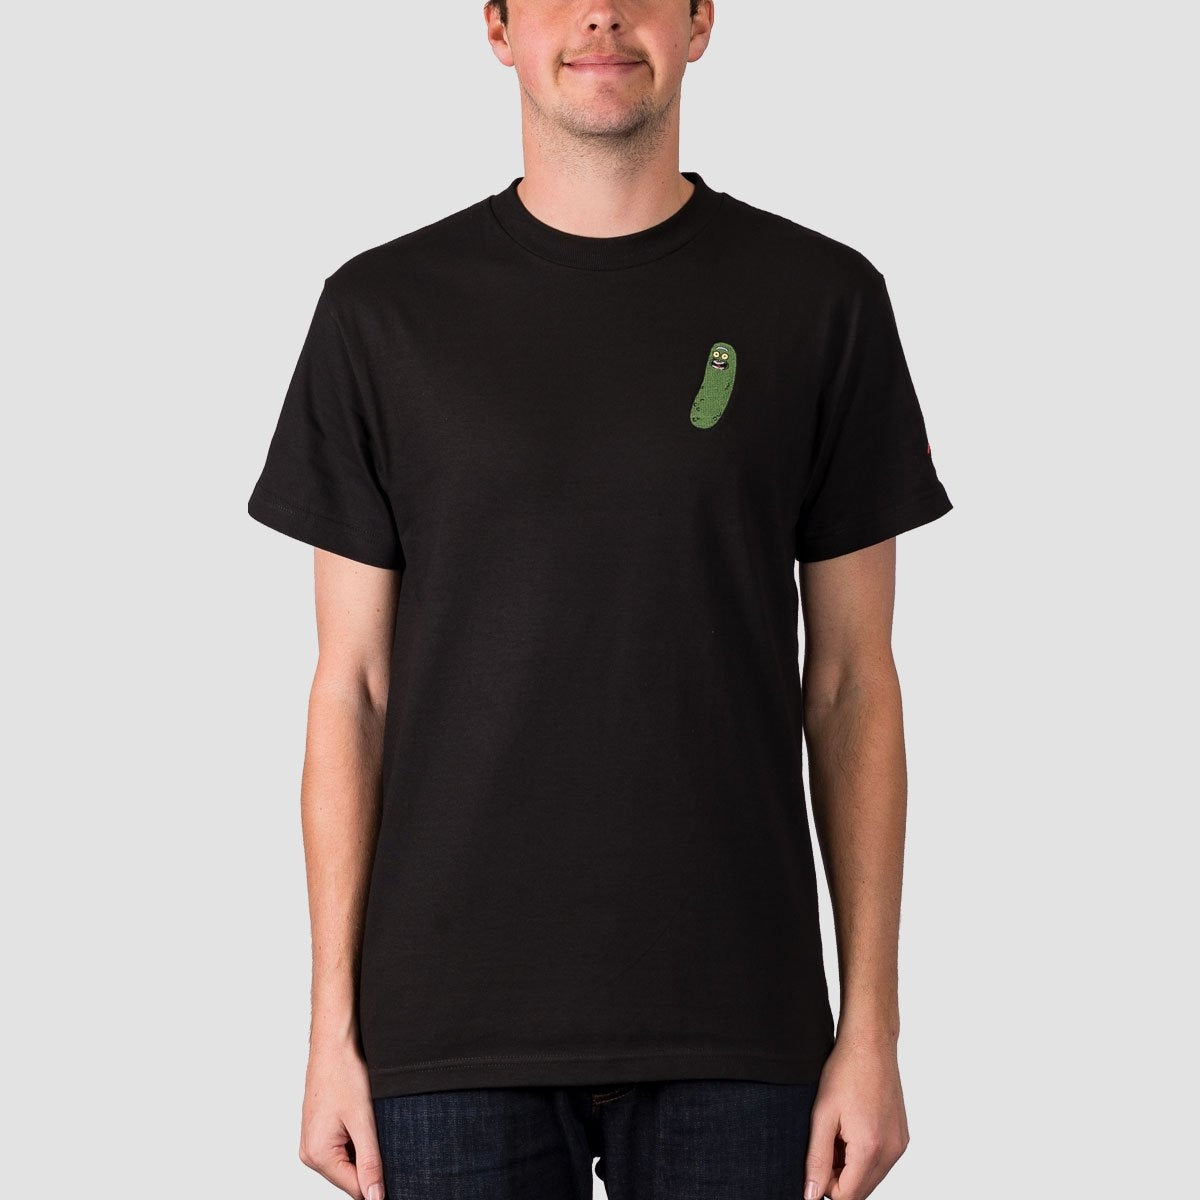 Primitive X Rick & Morty Pickle Rick Tee Black - Clothing